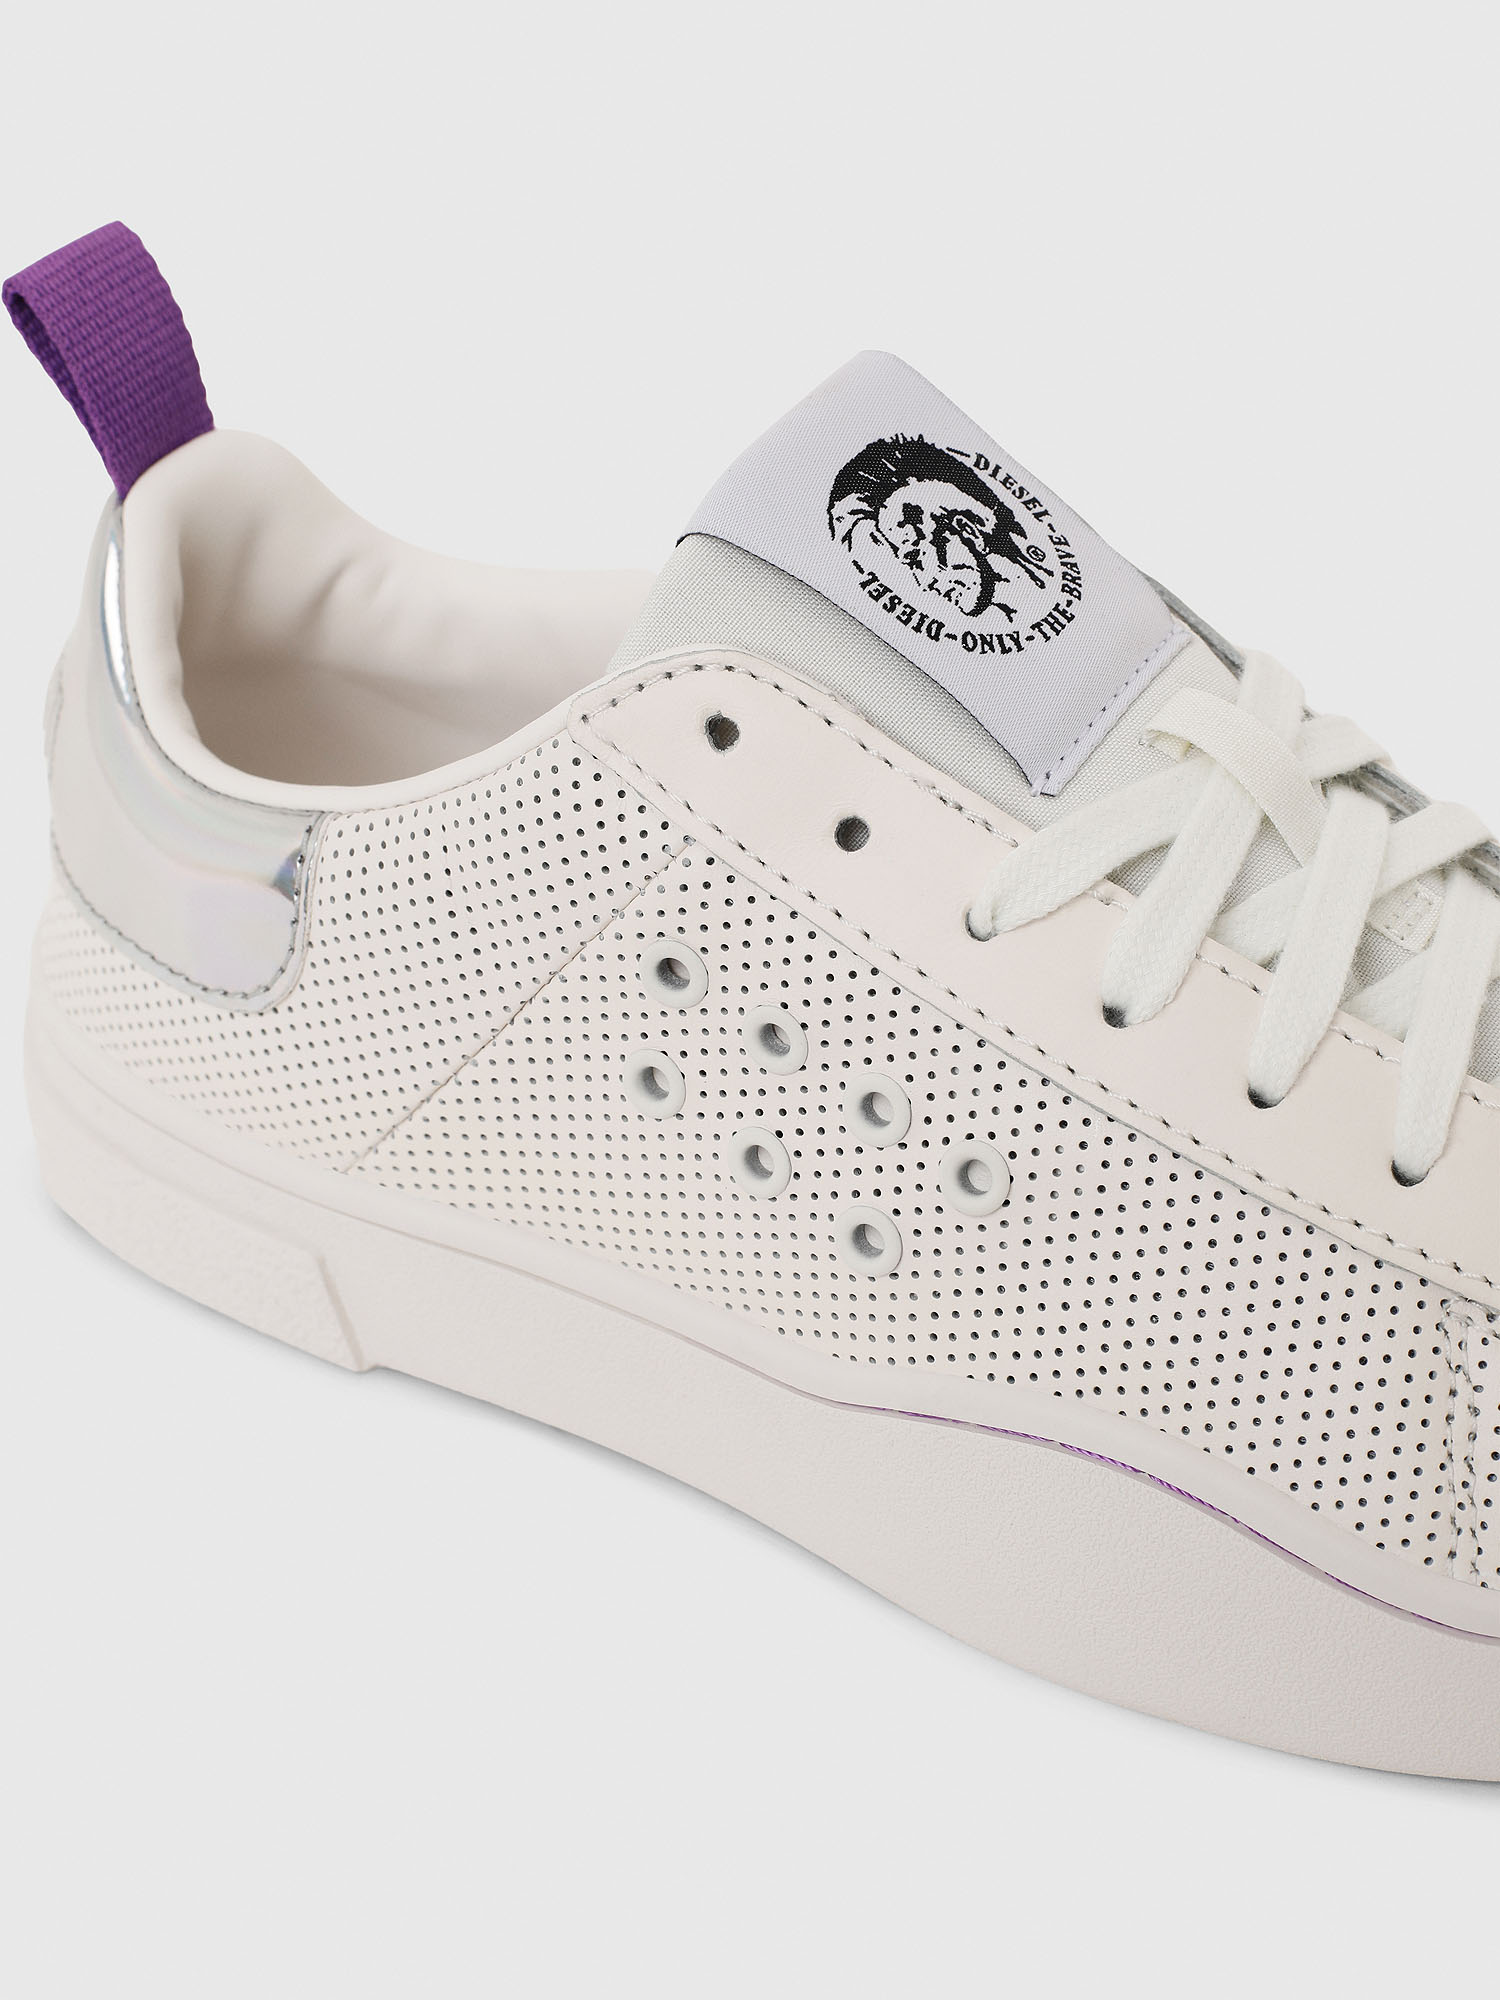 Diesel - S-CLEVER LC W,  - Sneakers - Image 5